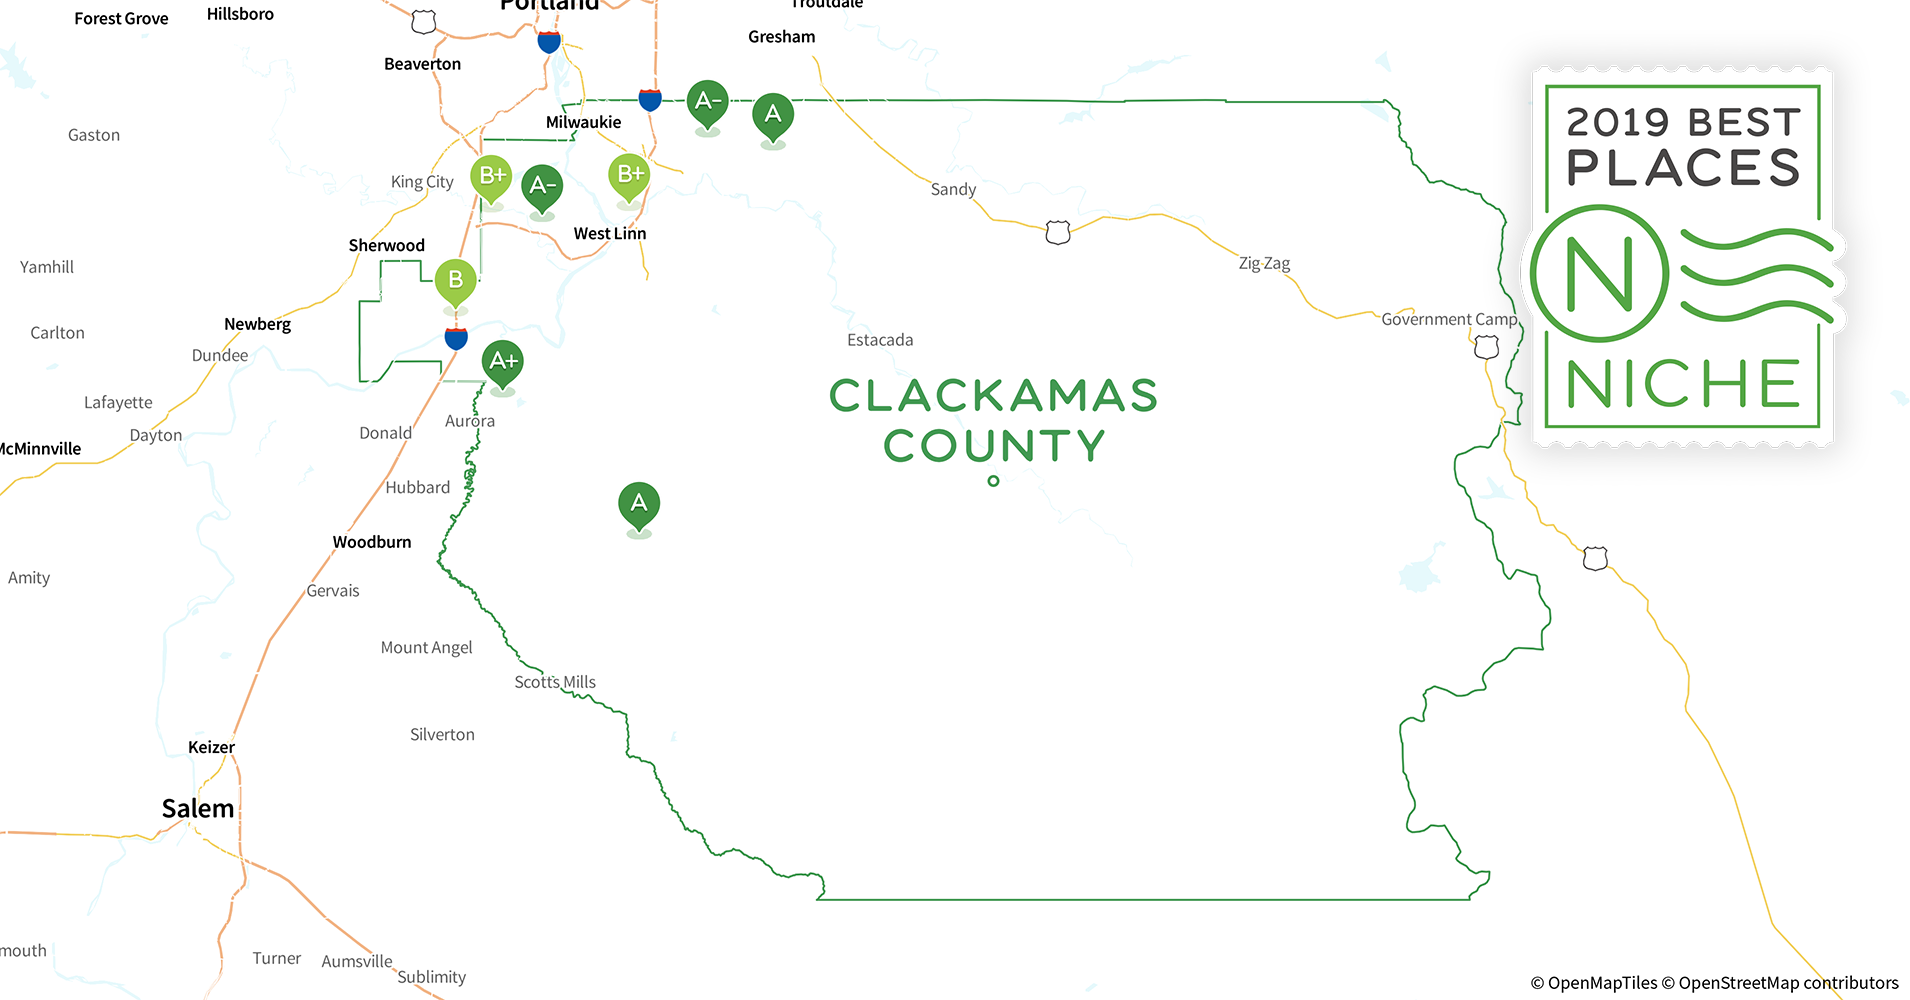 2019 Best Places to Live in Clackamas County, OR - Niche Clackamas Community College Map on